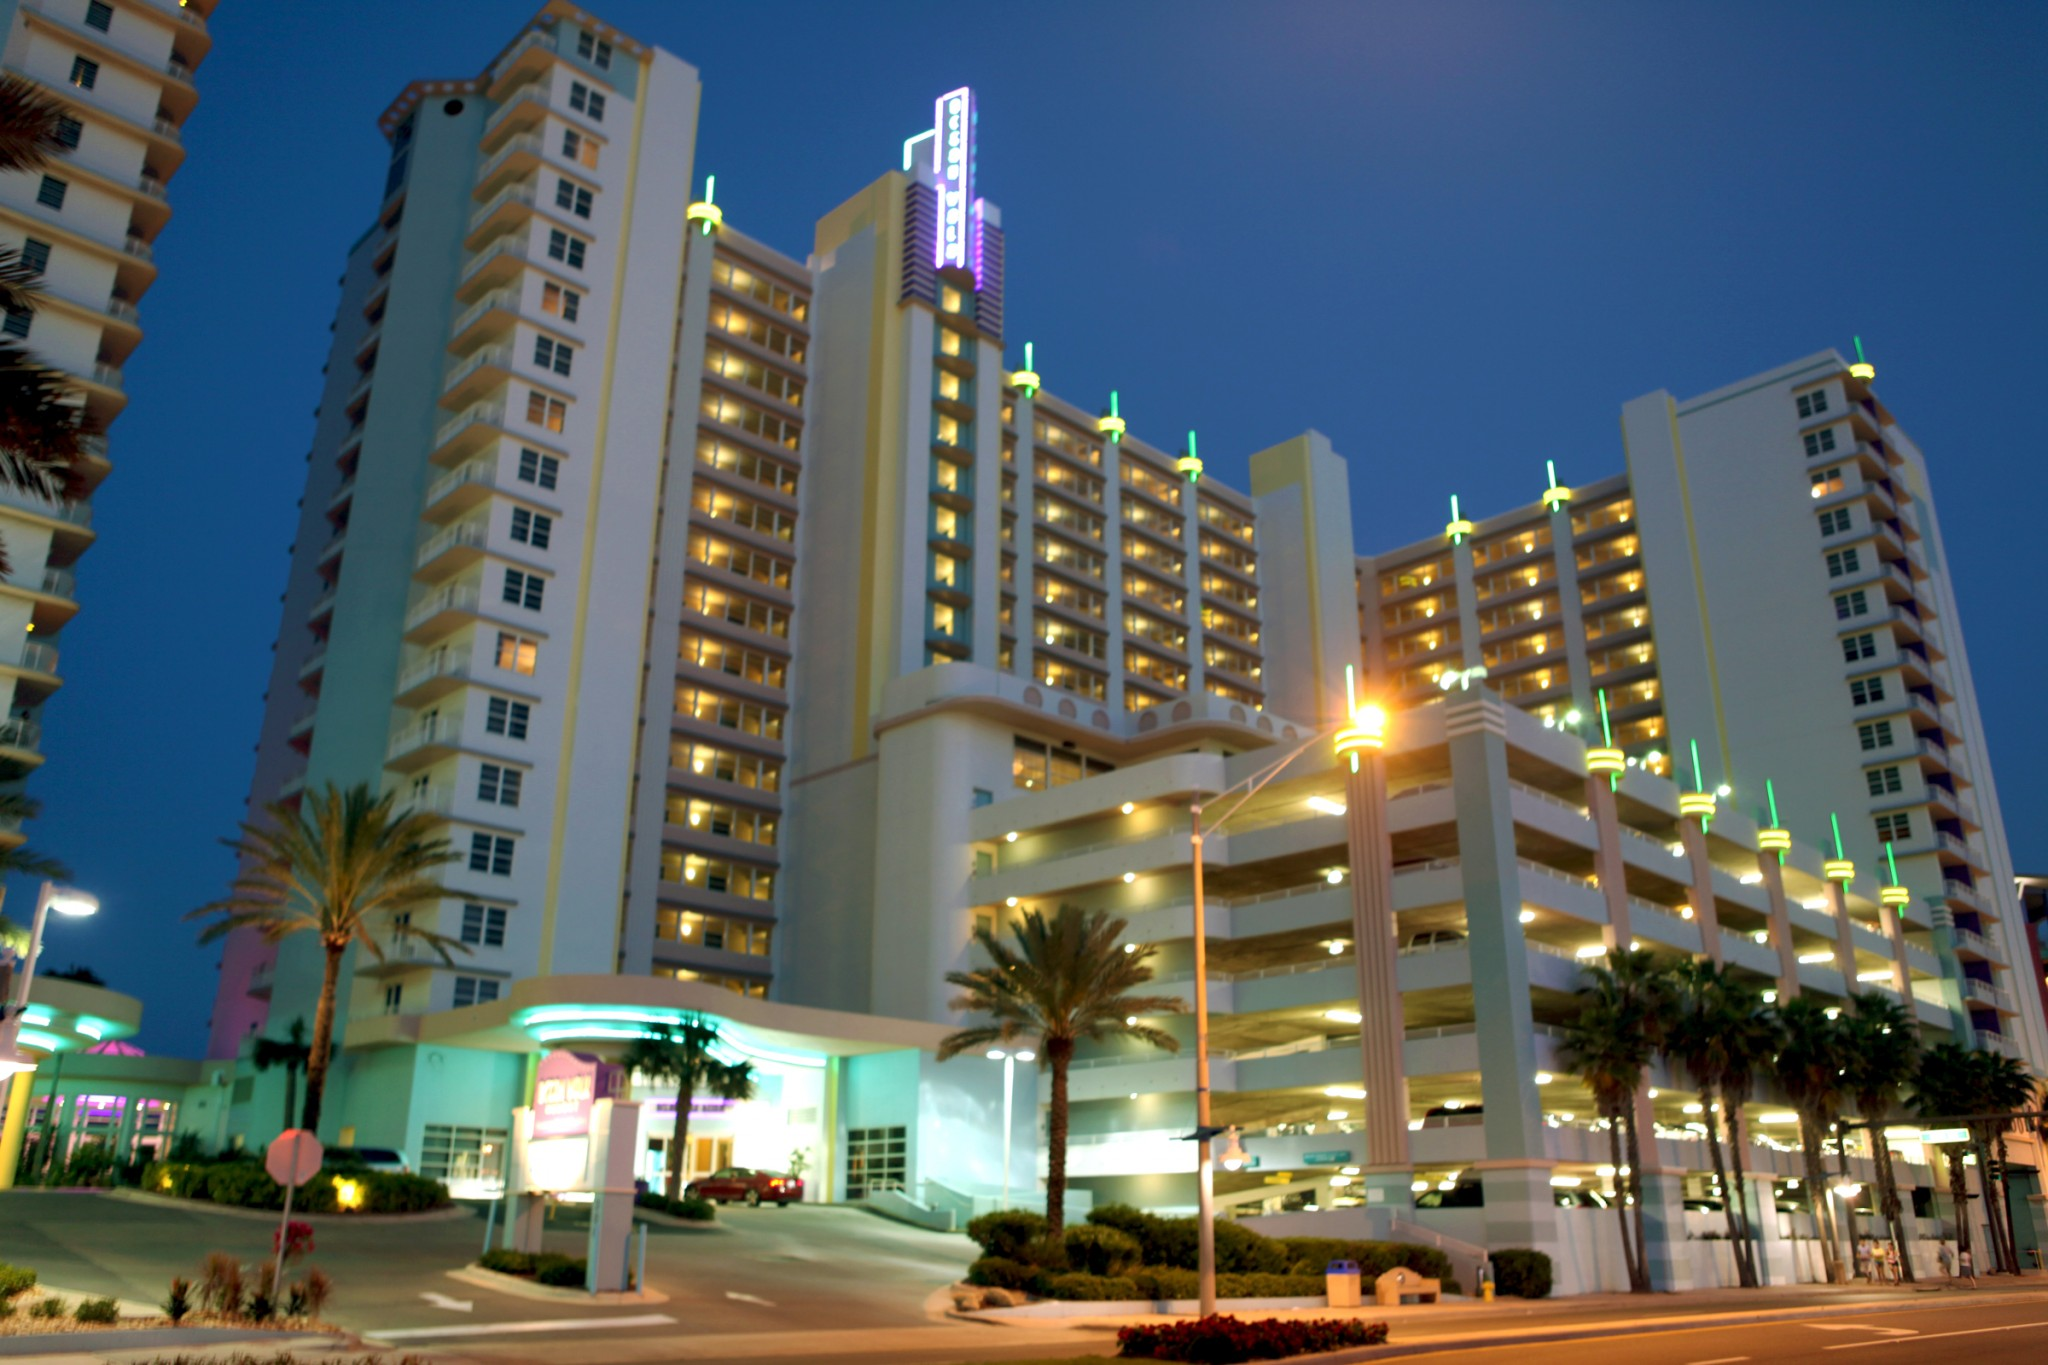 Accidental Discharge in Daytona Hotel Possibly Hits 12-Year-Old Boy